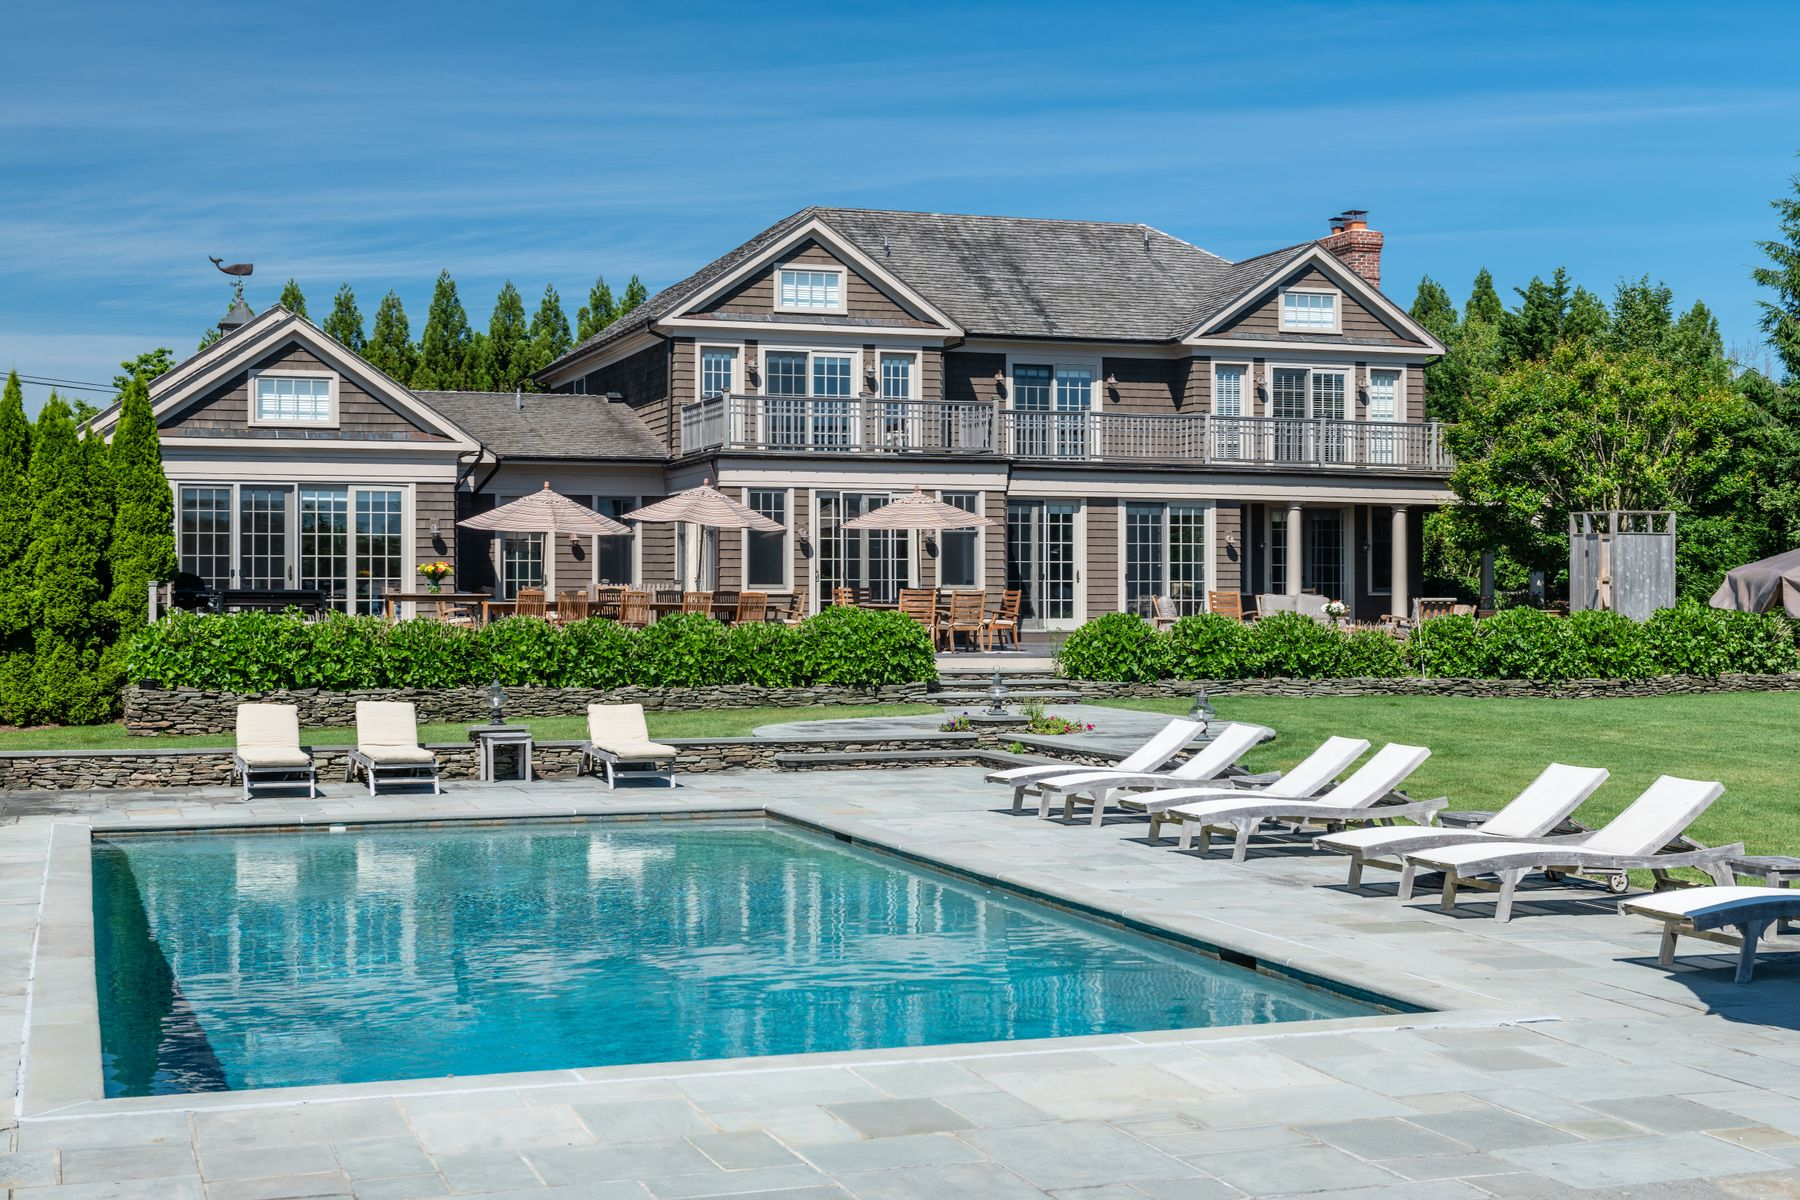 Single Family Home for Active at EXQUISITE TRADITIONAL ON BUTTER LANE 547 Butter Lane Bridgehampton, New York 11932 United States